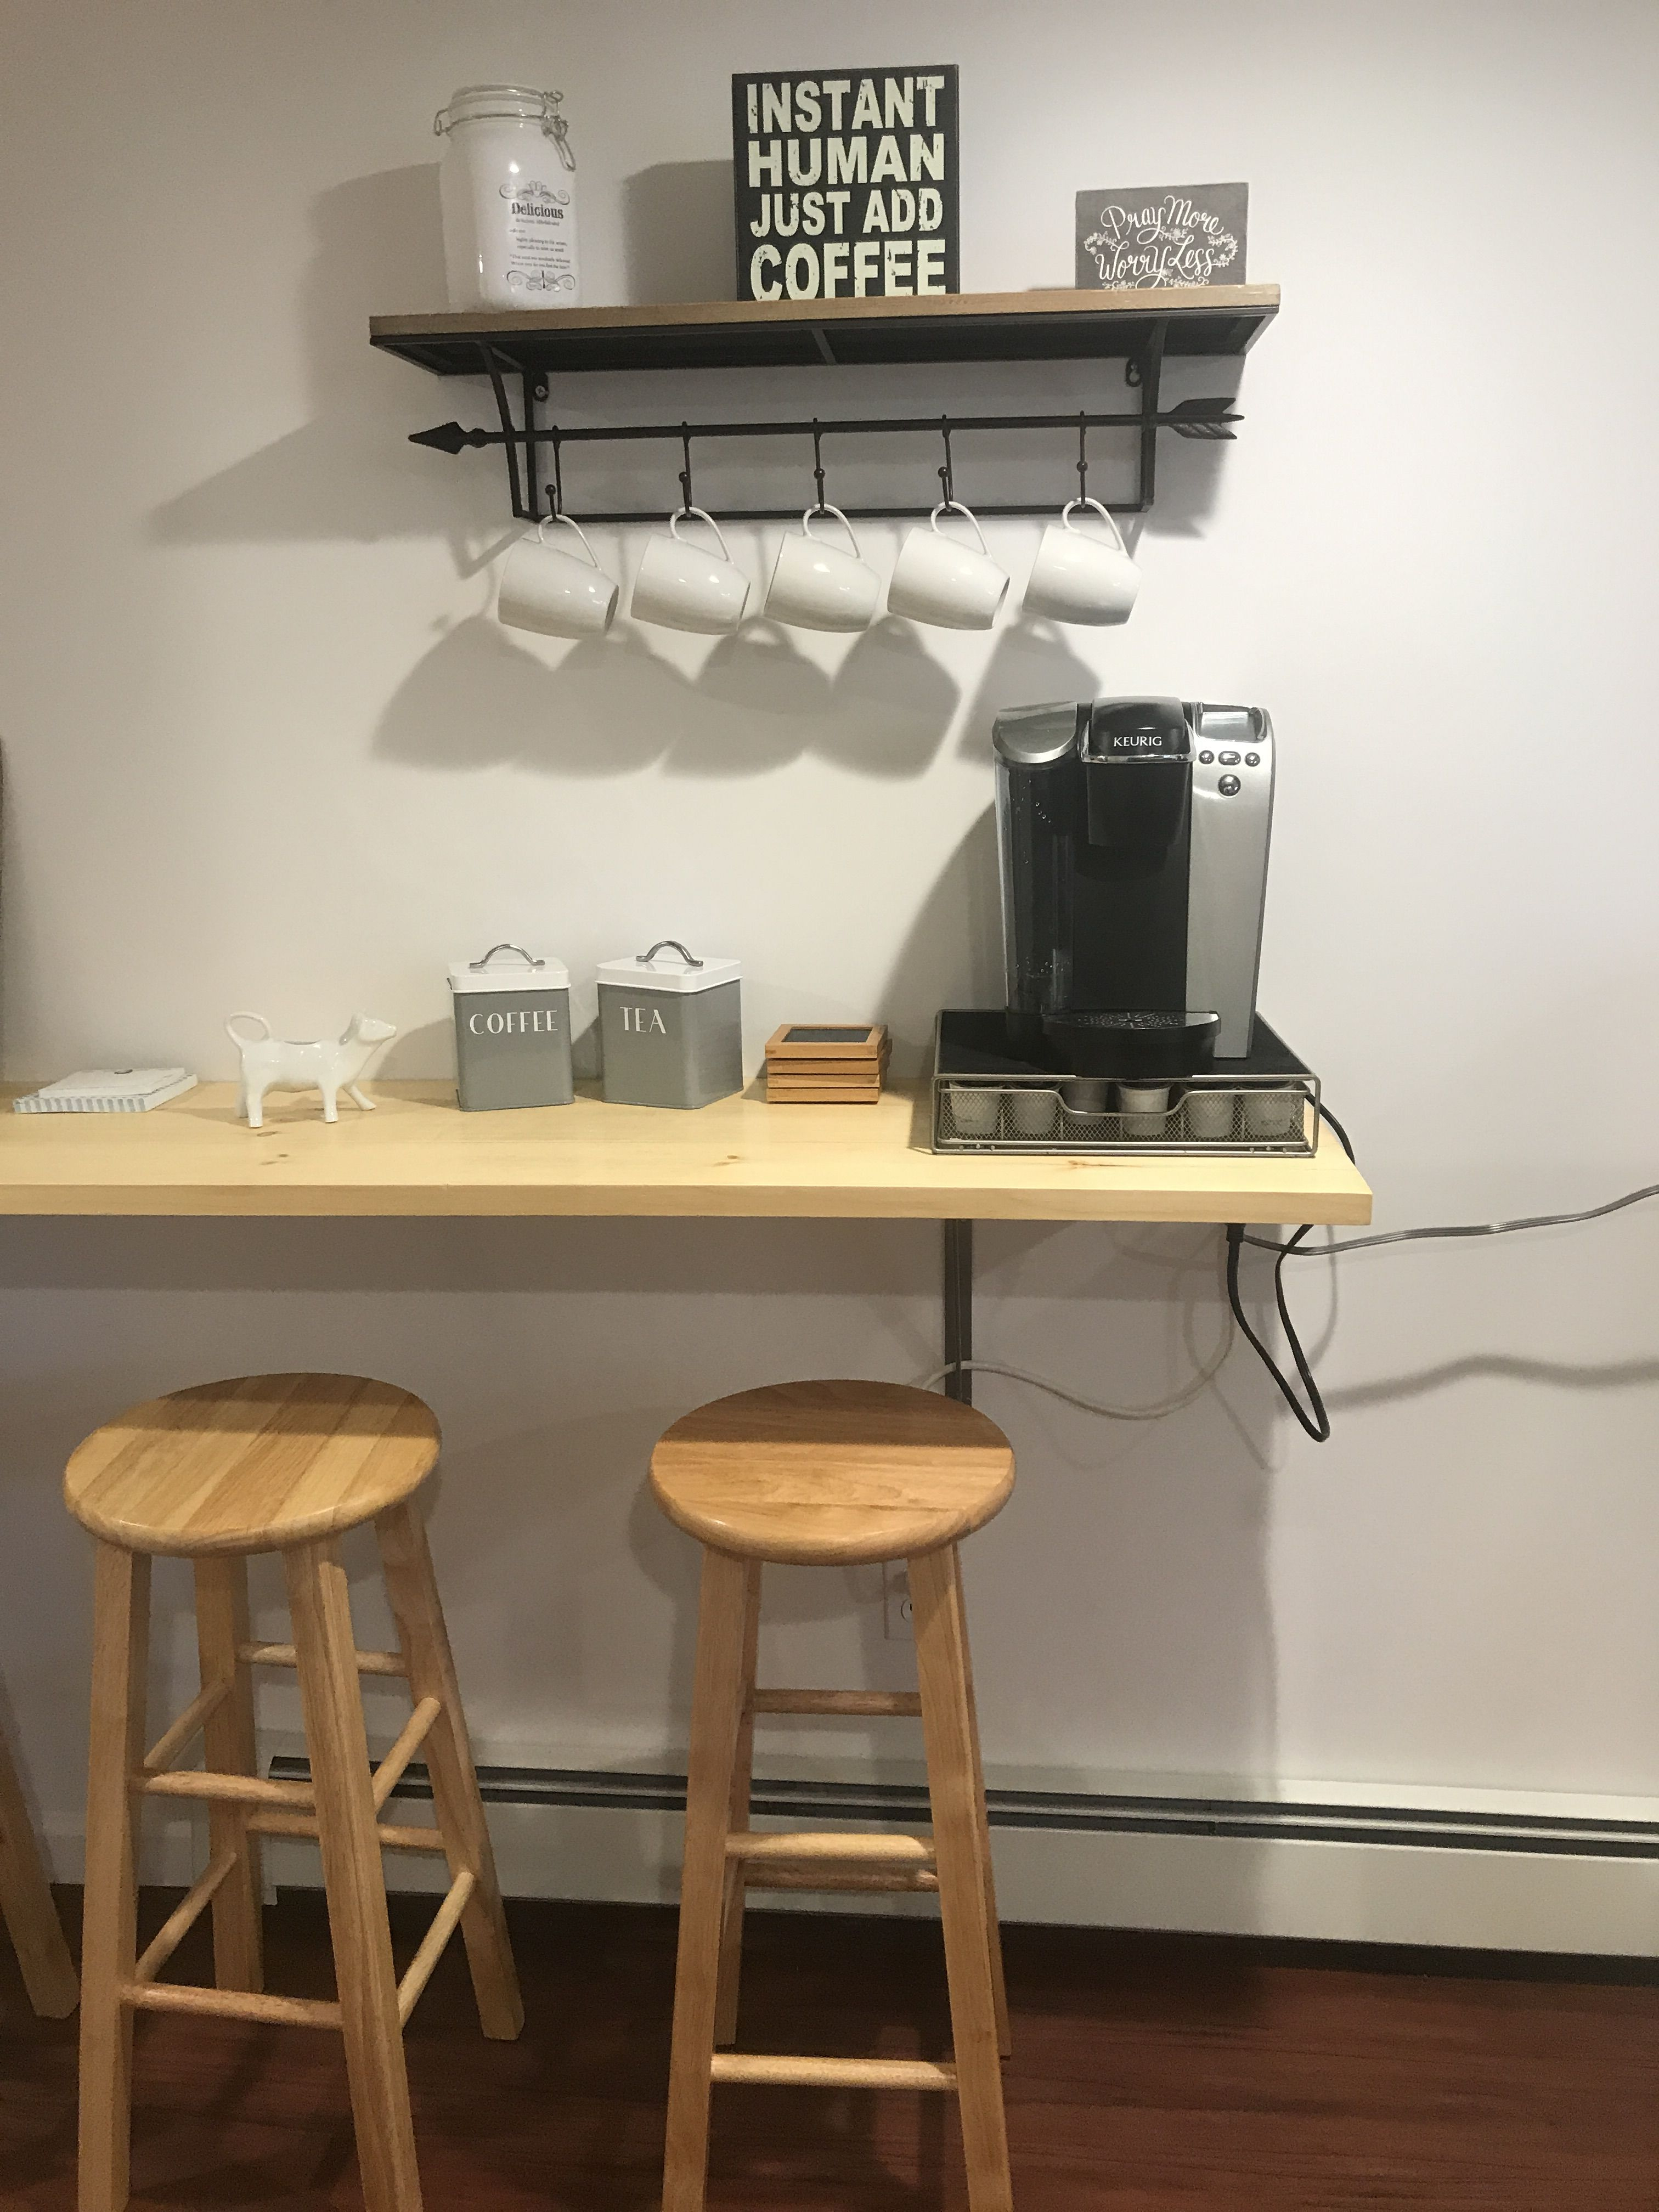 Relaxing Home Coffee Bar On Counter With Wooden Stools Below Decoracao Cozinha Pequena Decoracao De Cozinha Simples Decoracao Cozinha